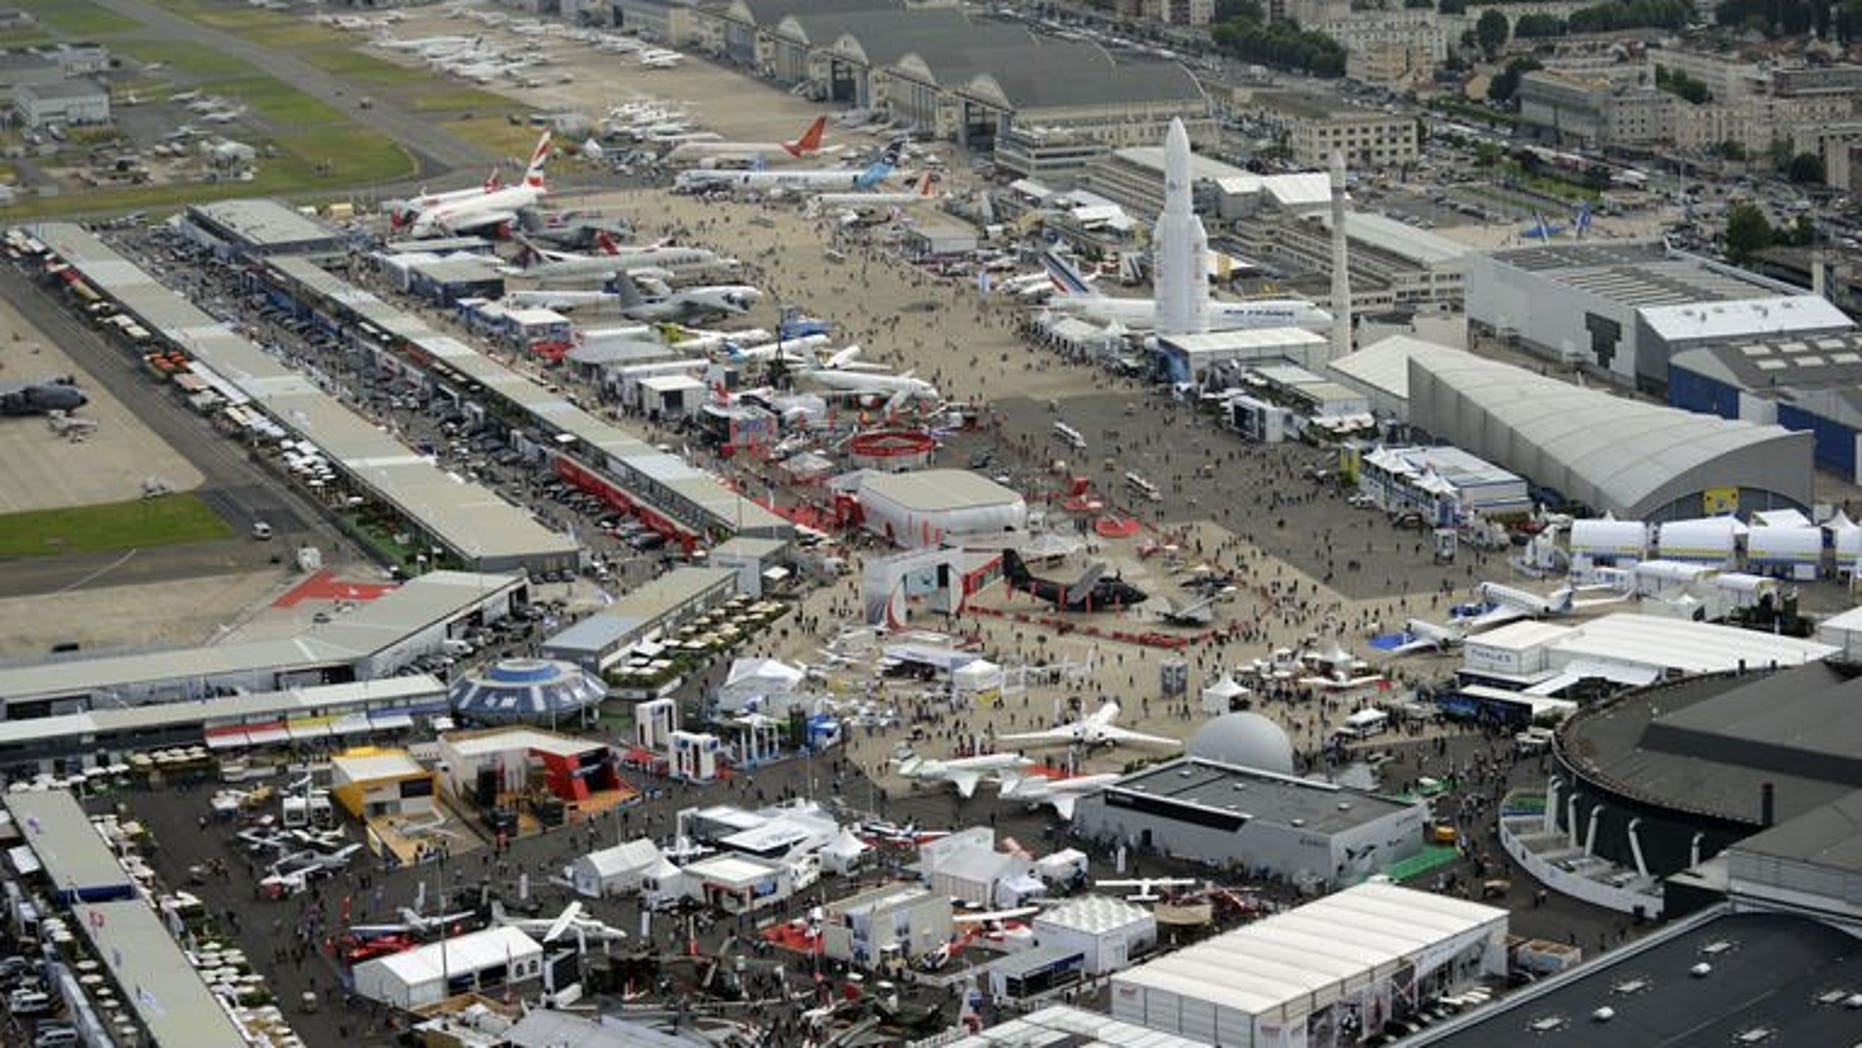 Aerial view of Le Bourget airport, near Paris taken on June 18, 2013 during the 50th International Paris Air show. Canadian plane maker Bombardier announced dozens of orders at the Paris Air Show on Tuesday in two separate deals worth about $1.3 billion (971 million euros) at catalogue prices.